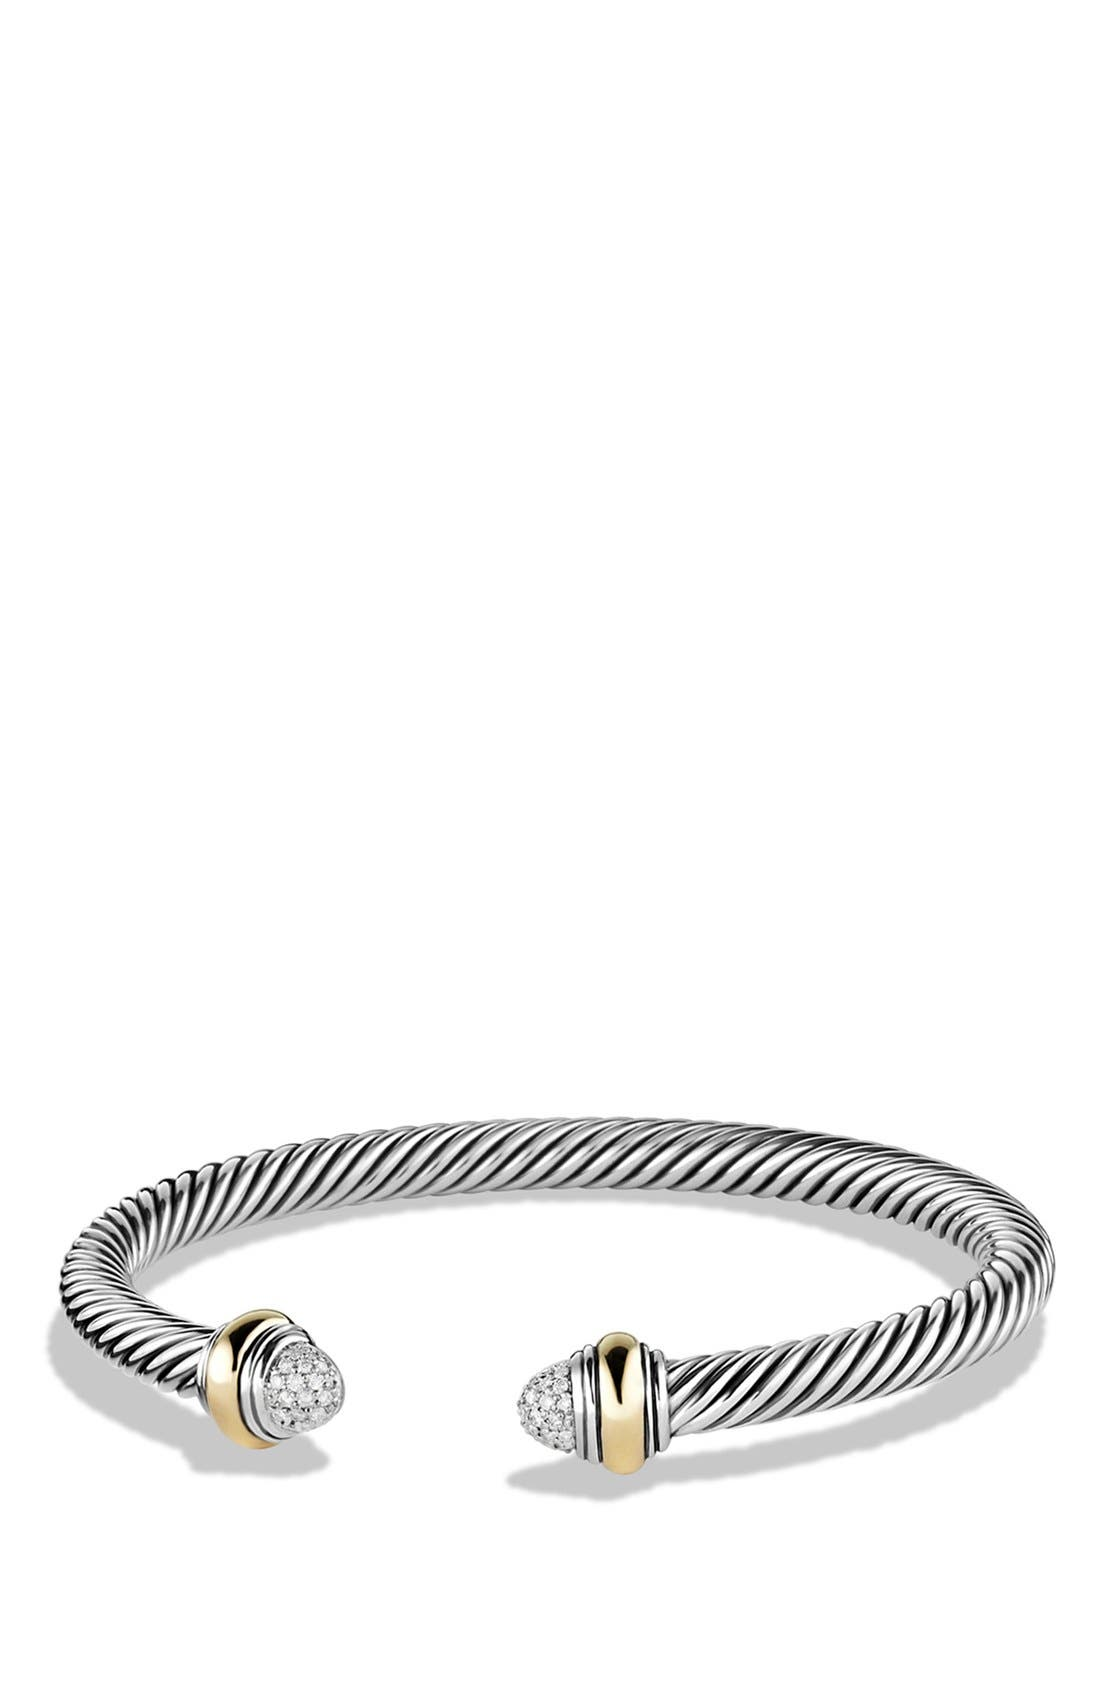 Main Image - David Yurman 'Cable Classics' Bracelet with Diamonds and Gold